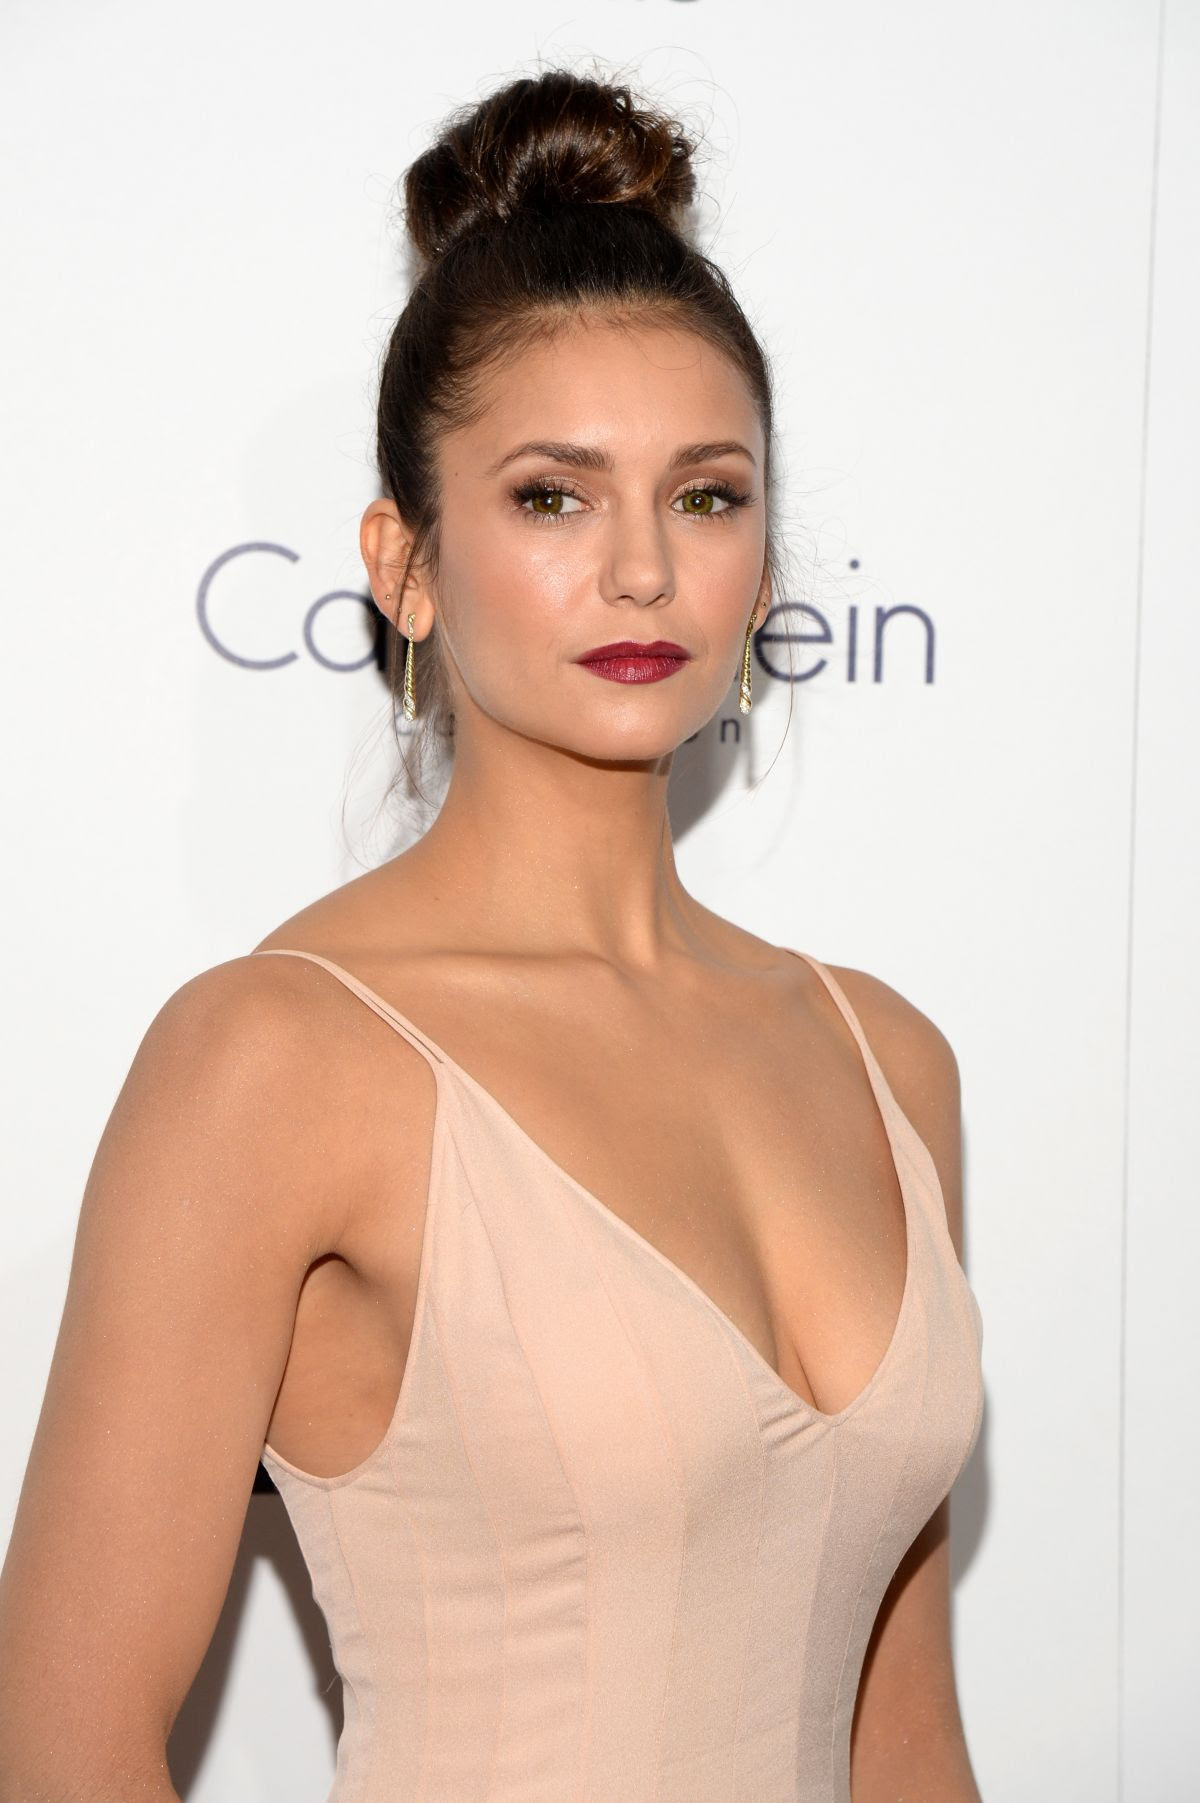 NINA DOBREV at 2015 Elle Women in Hollywood Awards in Los Angeles 10/19/2015